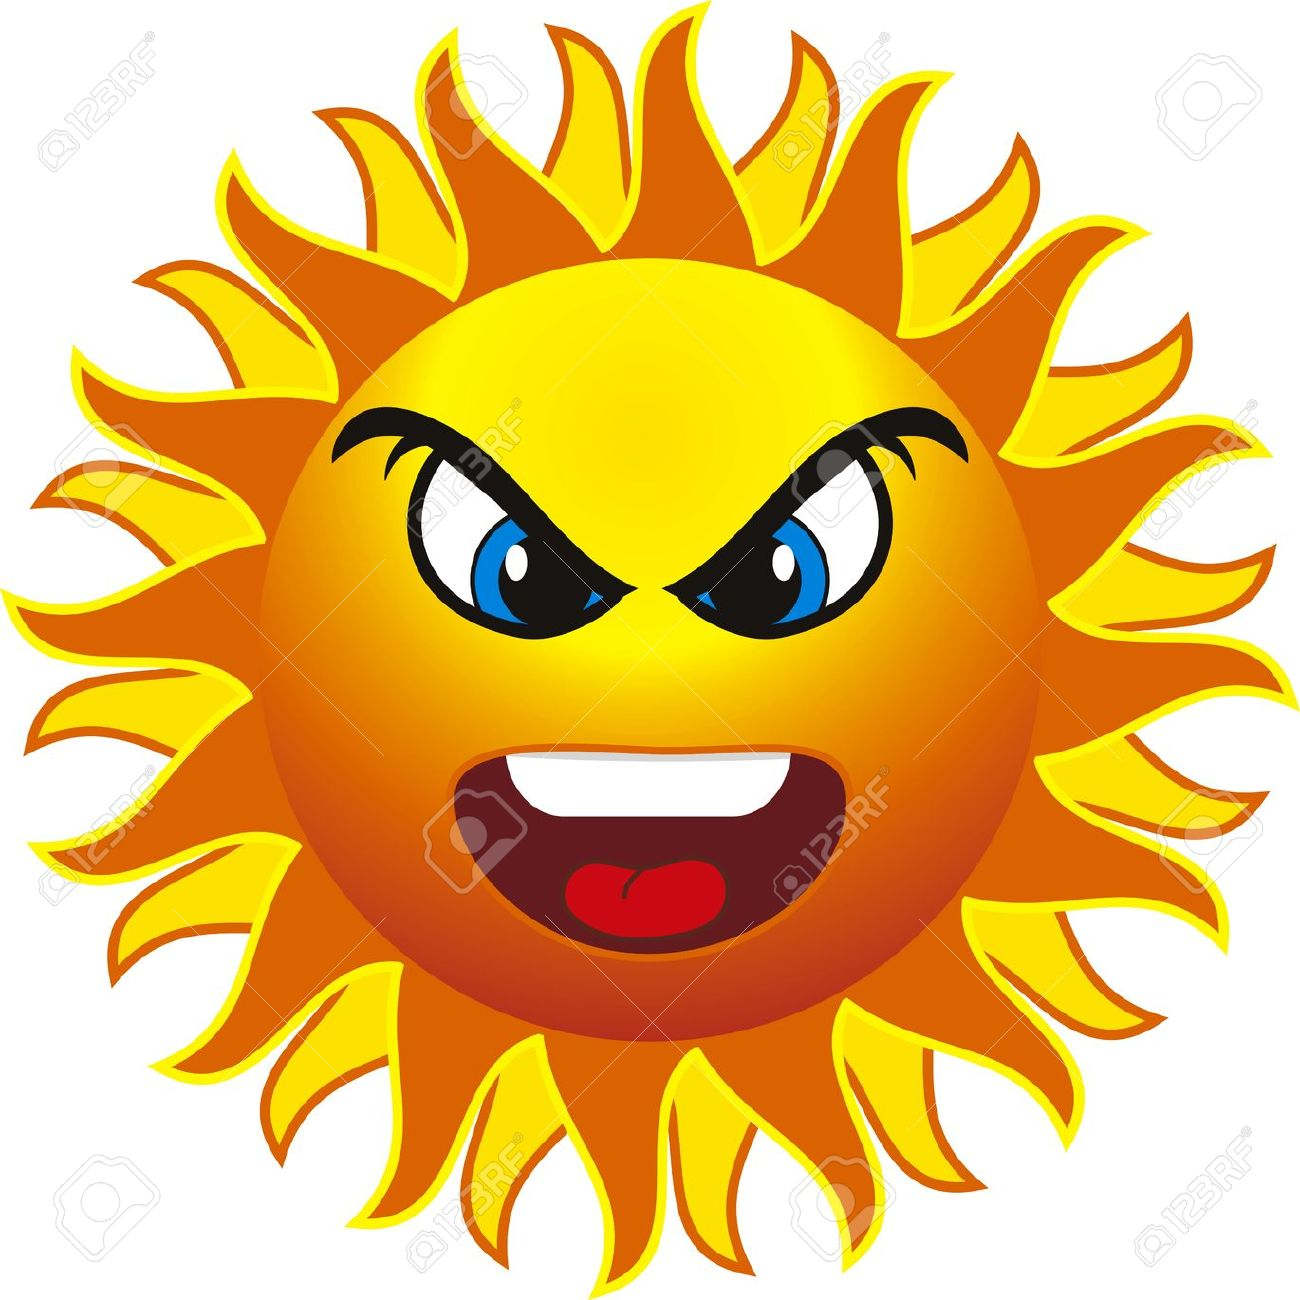 hight resolution of free angry sun clipart